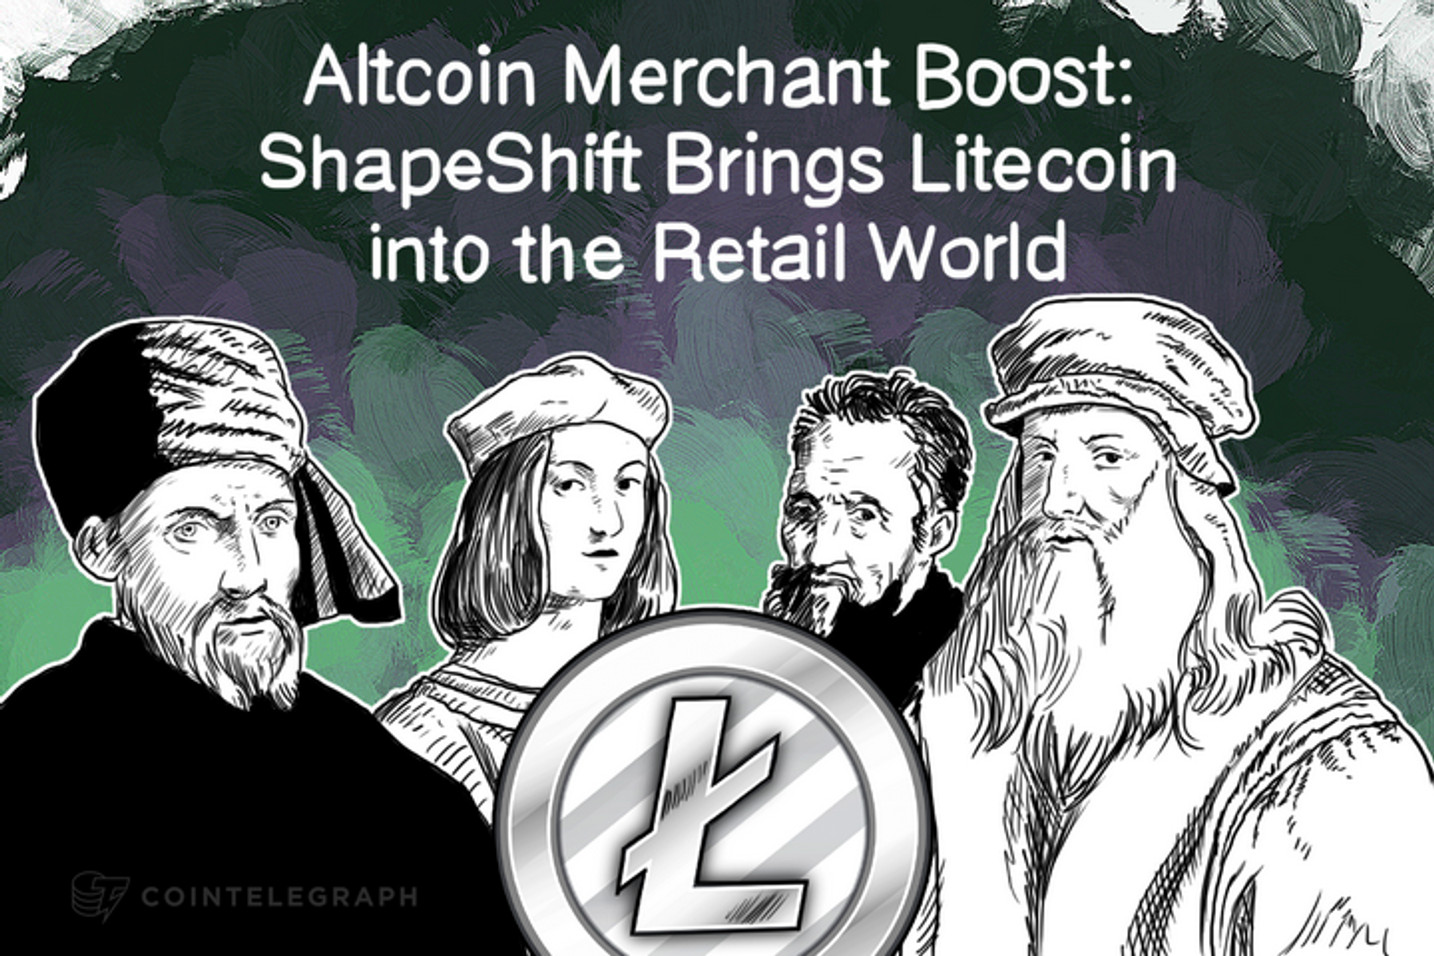 Altcoin Merchant Boost: ShapeShift Brings Litecoin into the Retail World